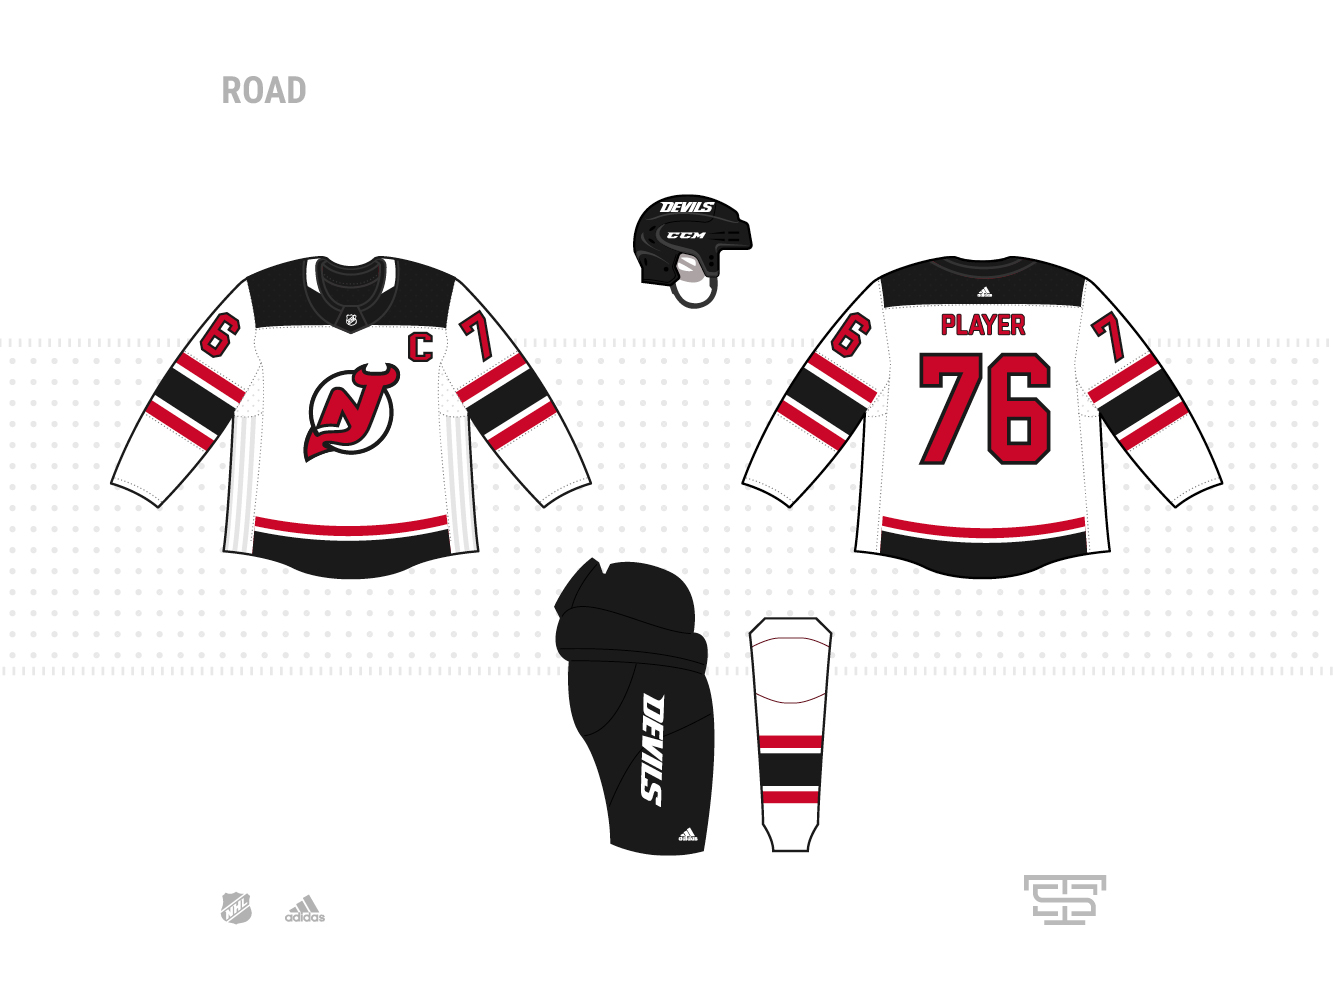 new product 90487 c5a1f Adidas NHL Jersey Concepts - Page 3 - Concepts - Chris ...